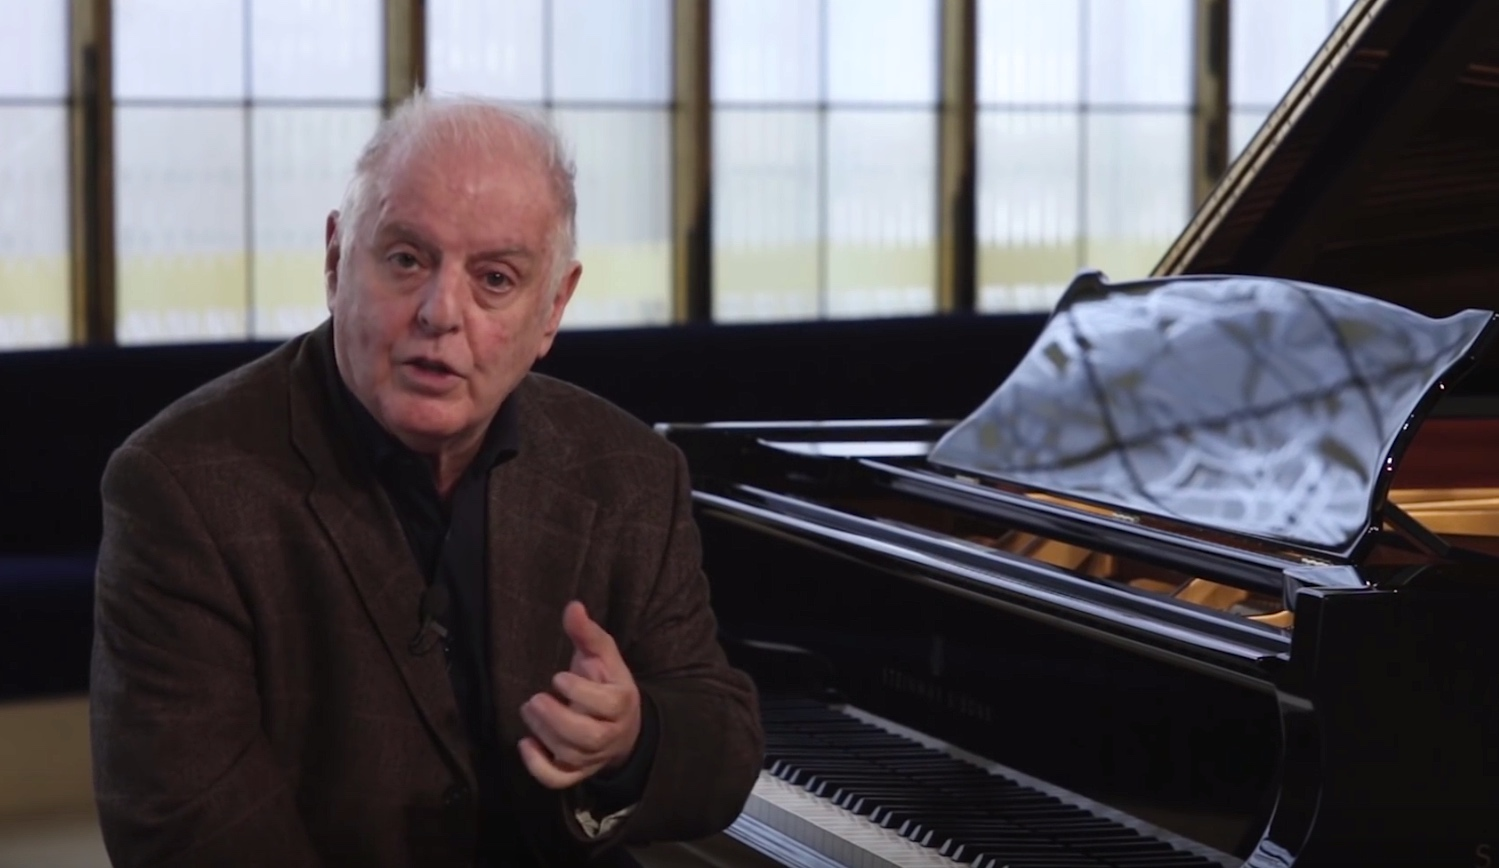 Daniel Barenboim (YouTube)